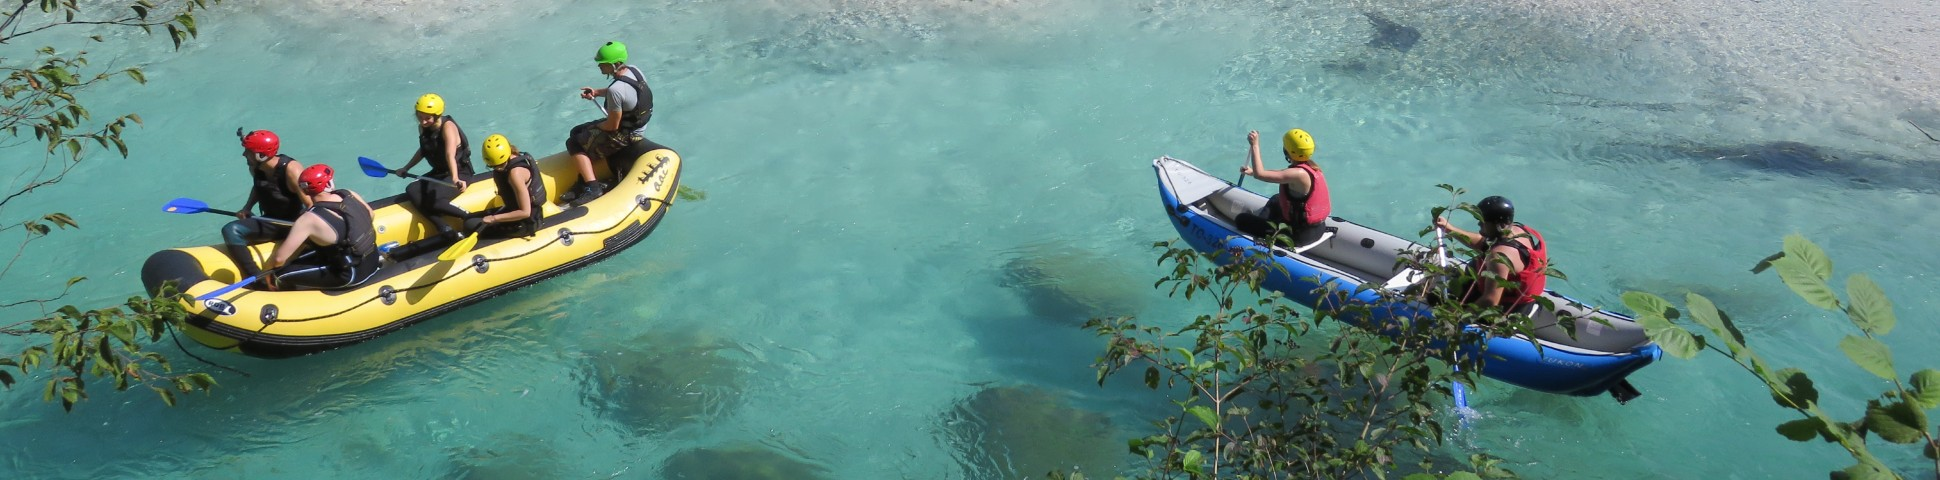 Rafting in a turquoise water